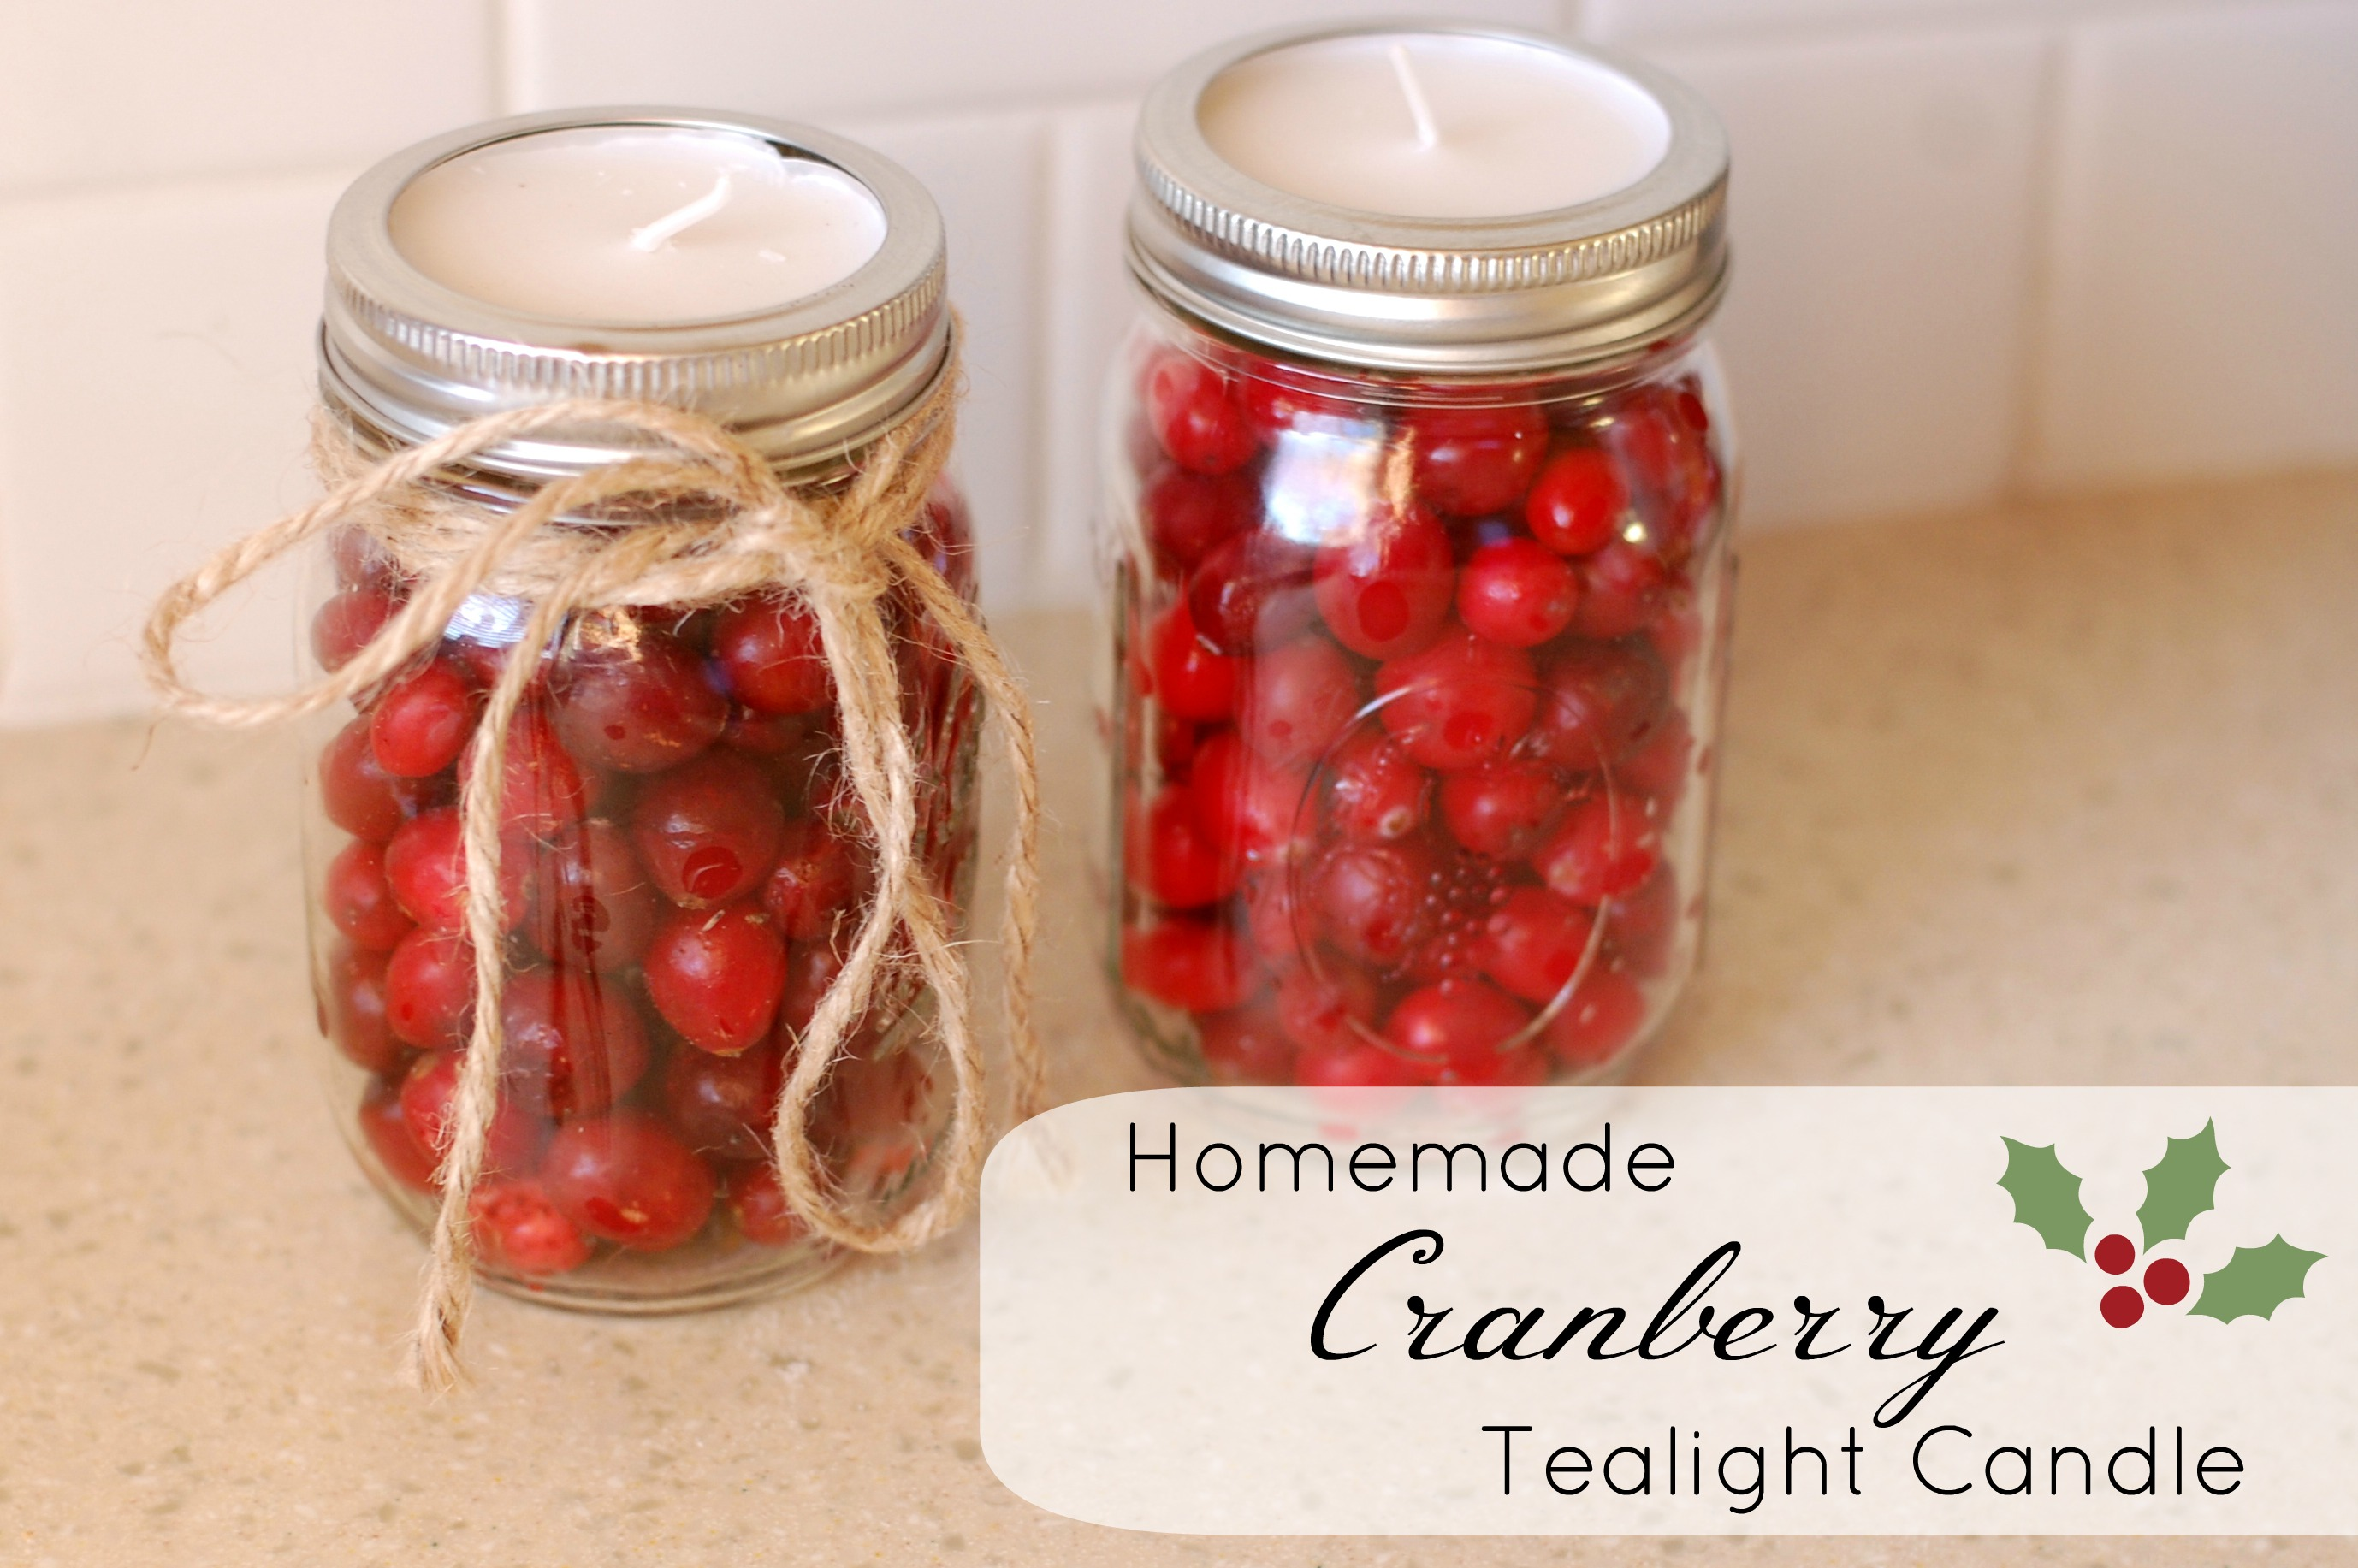 Homemade Cranberry Tealight Candle